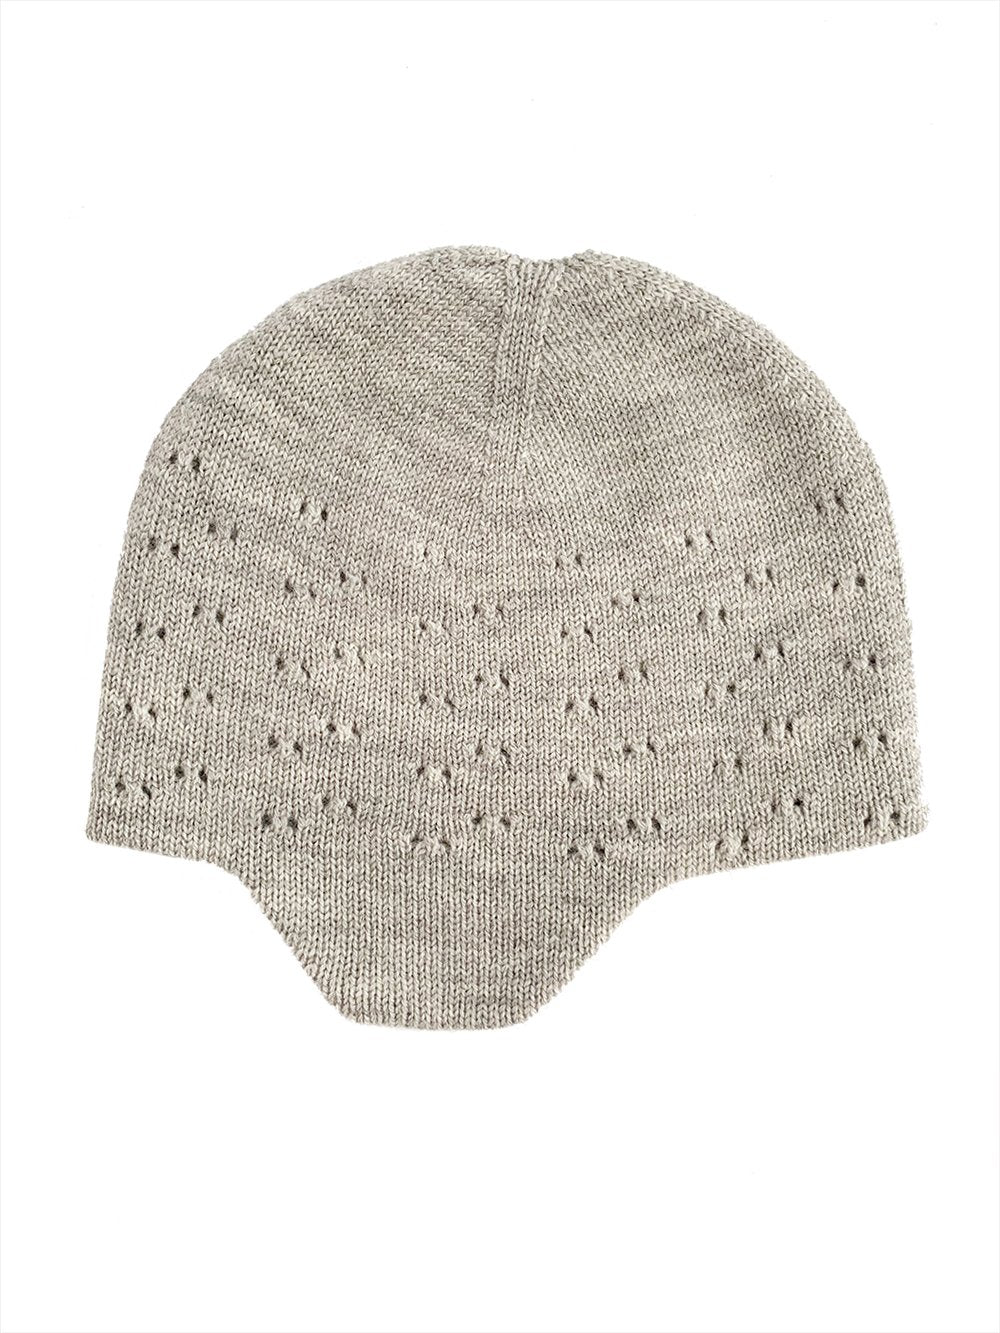 Reversible Hat - Merino Wool - Dua - Grey Melange